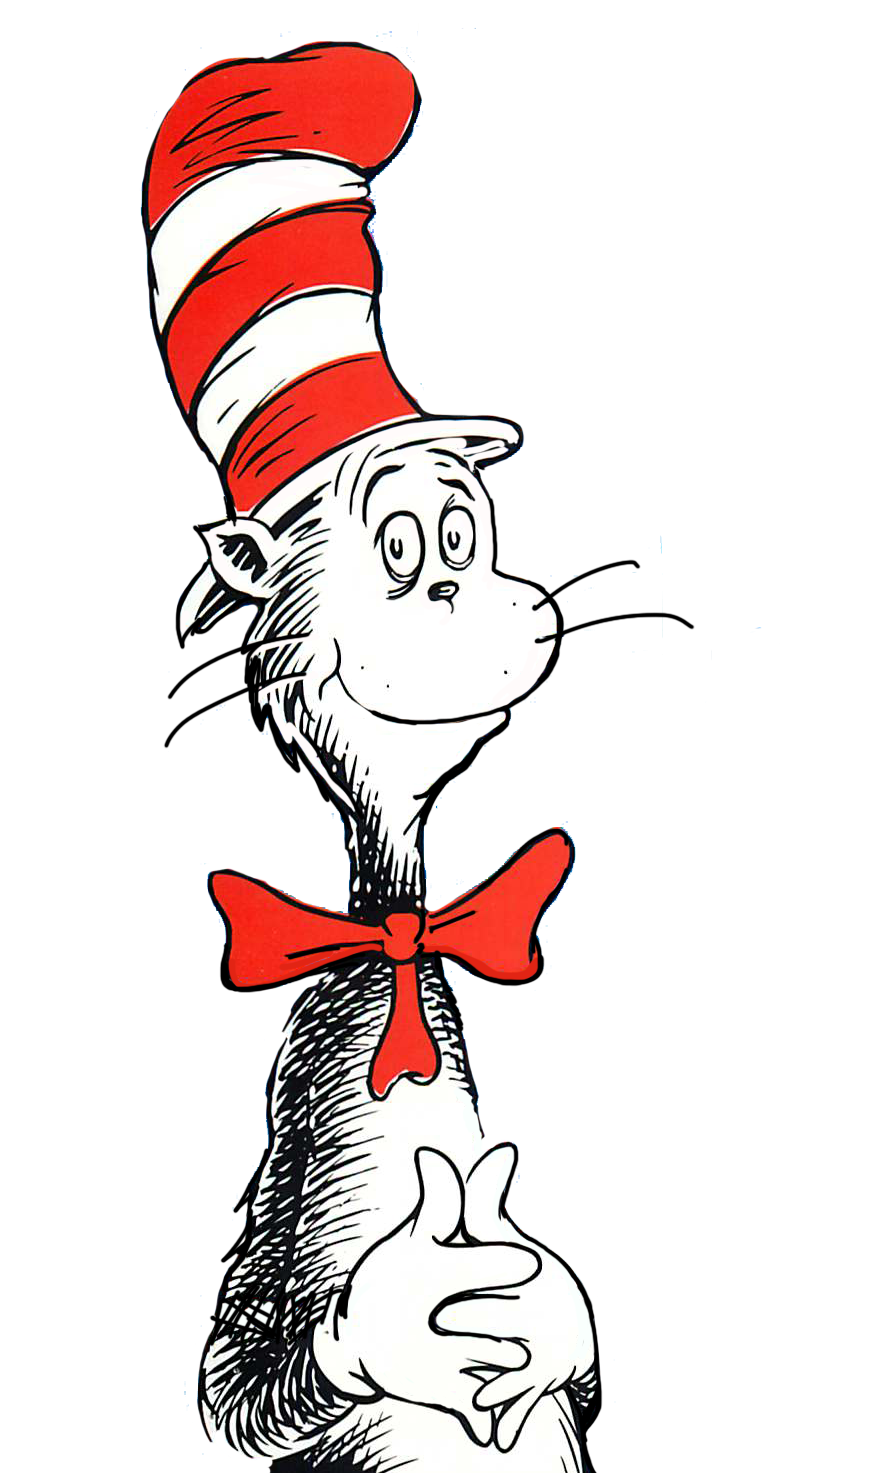 Cat in the hat outline clipart banner freeuse library See SEUSSICAL live on stage with Music Circus at the Wells Fargo ... banner freeuse library